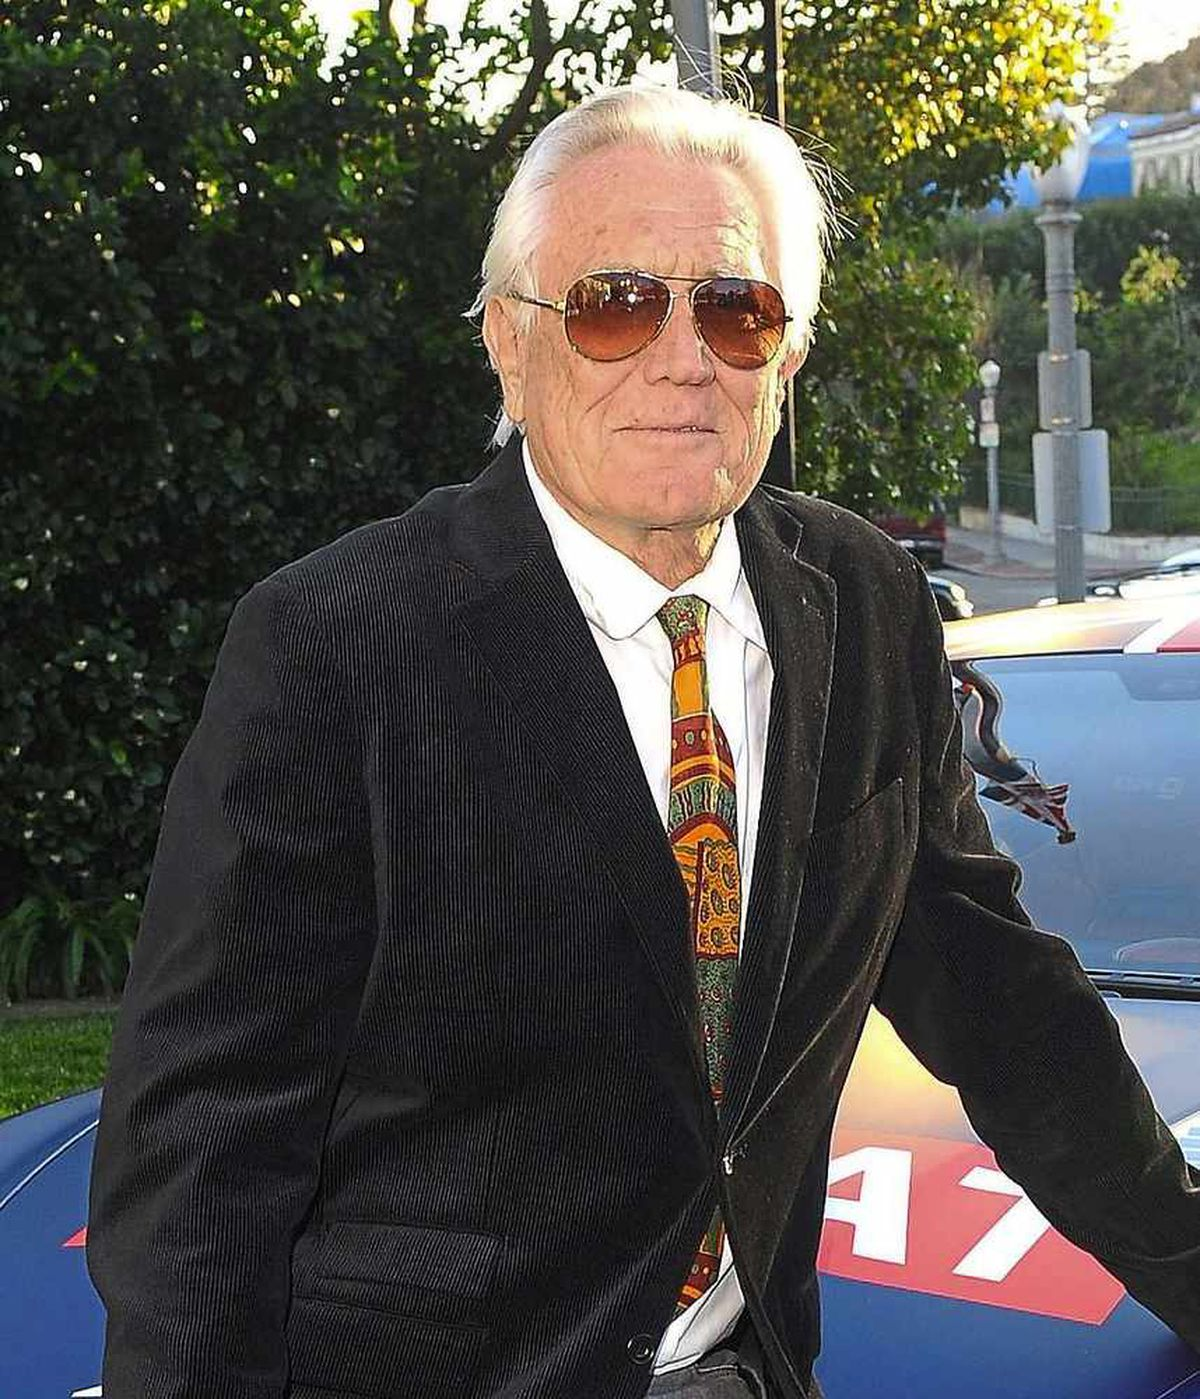 George Lazenby now, aged 75